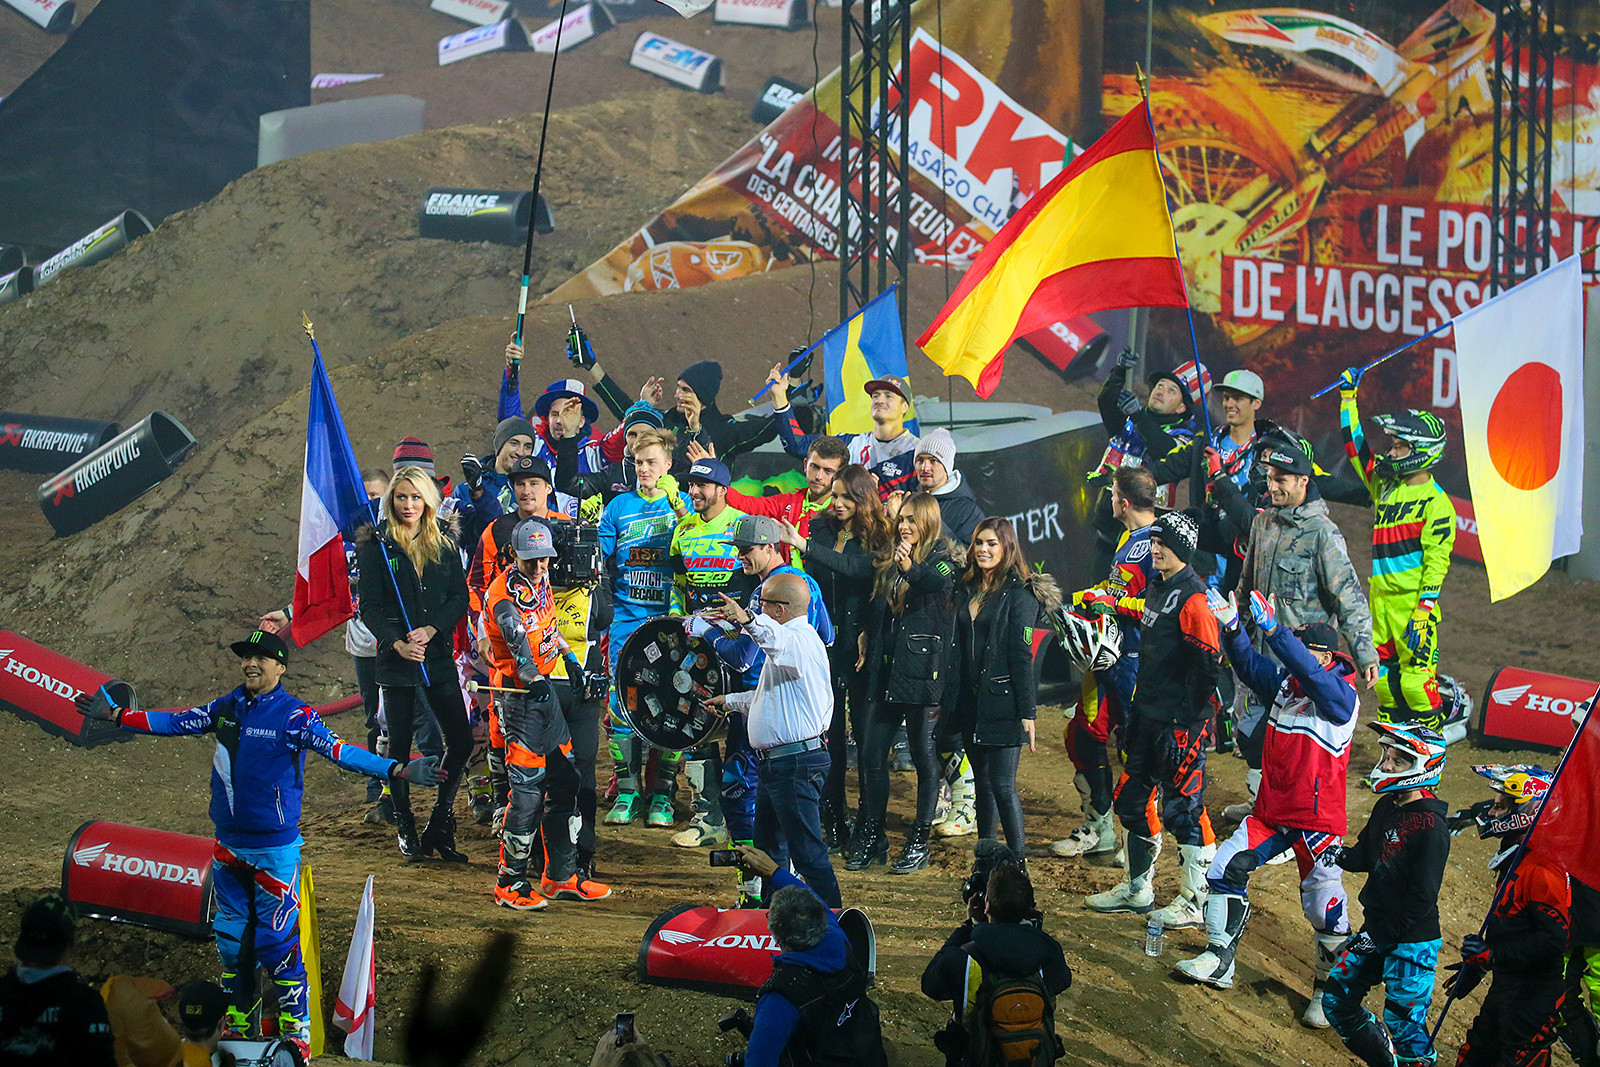 Clap along - Photo Gallery: Paris-Lille Supercross, Day 2 - Motocross Pictures - Vital MX